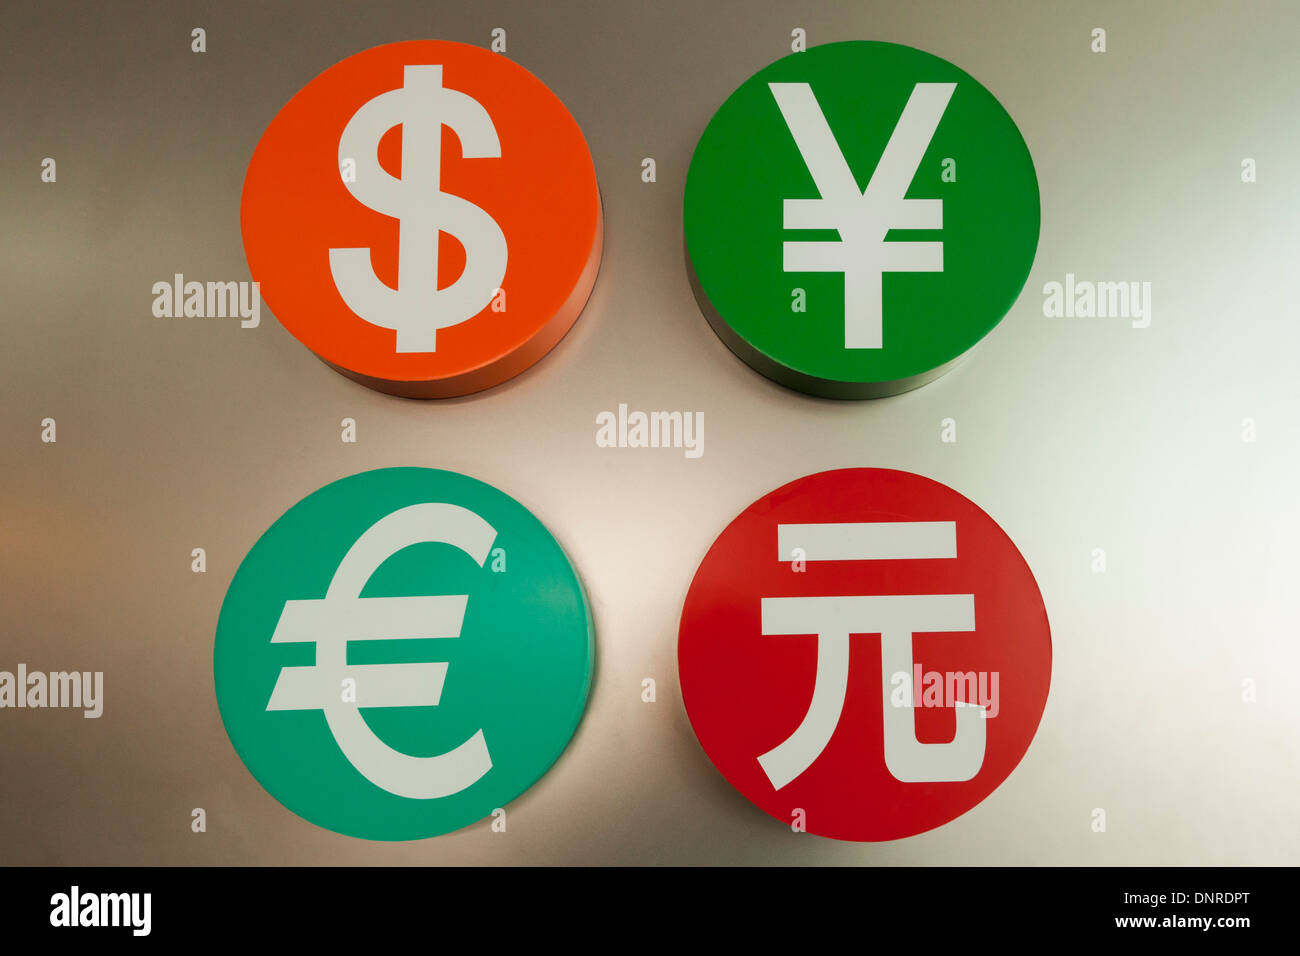 Foreign Currencies Exchange Stock Photos & Foreign